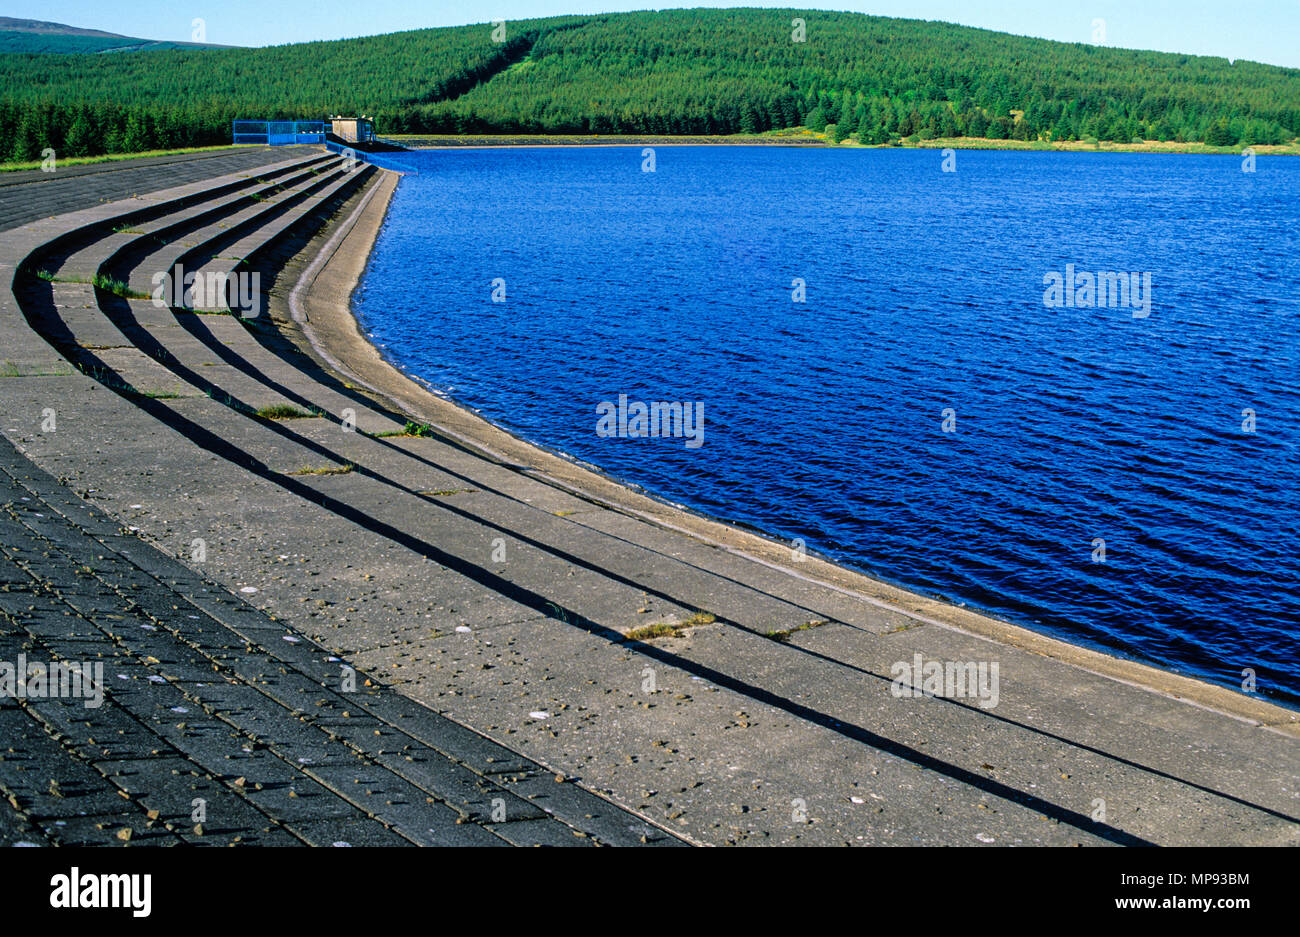 Altnahinch Reservoir, Slieveanorra Forest,  Loughguile, County Antrim, Northern Ireland, UK, GB. - Stock Image